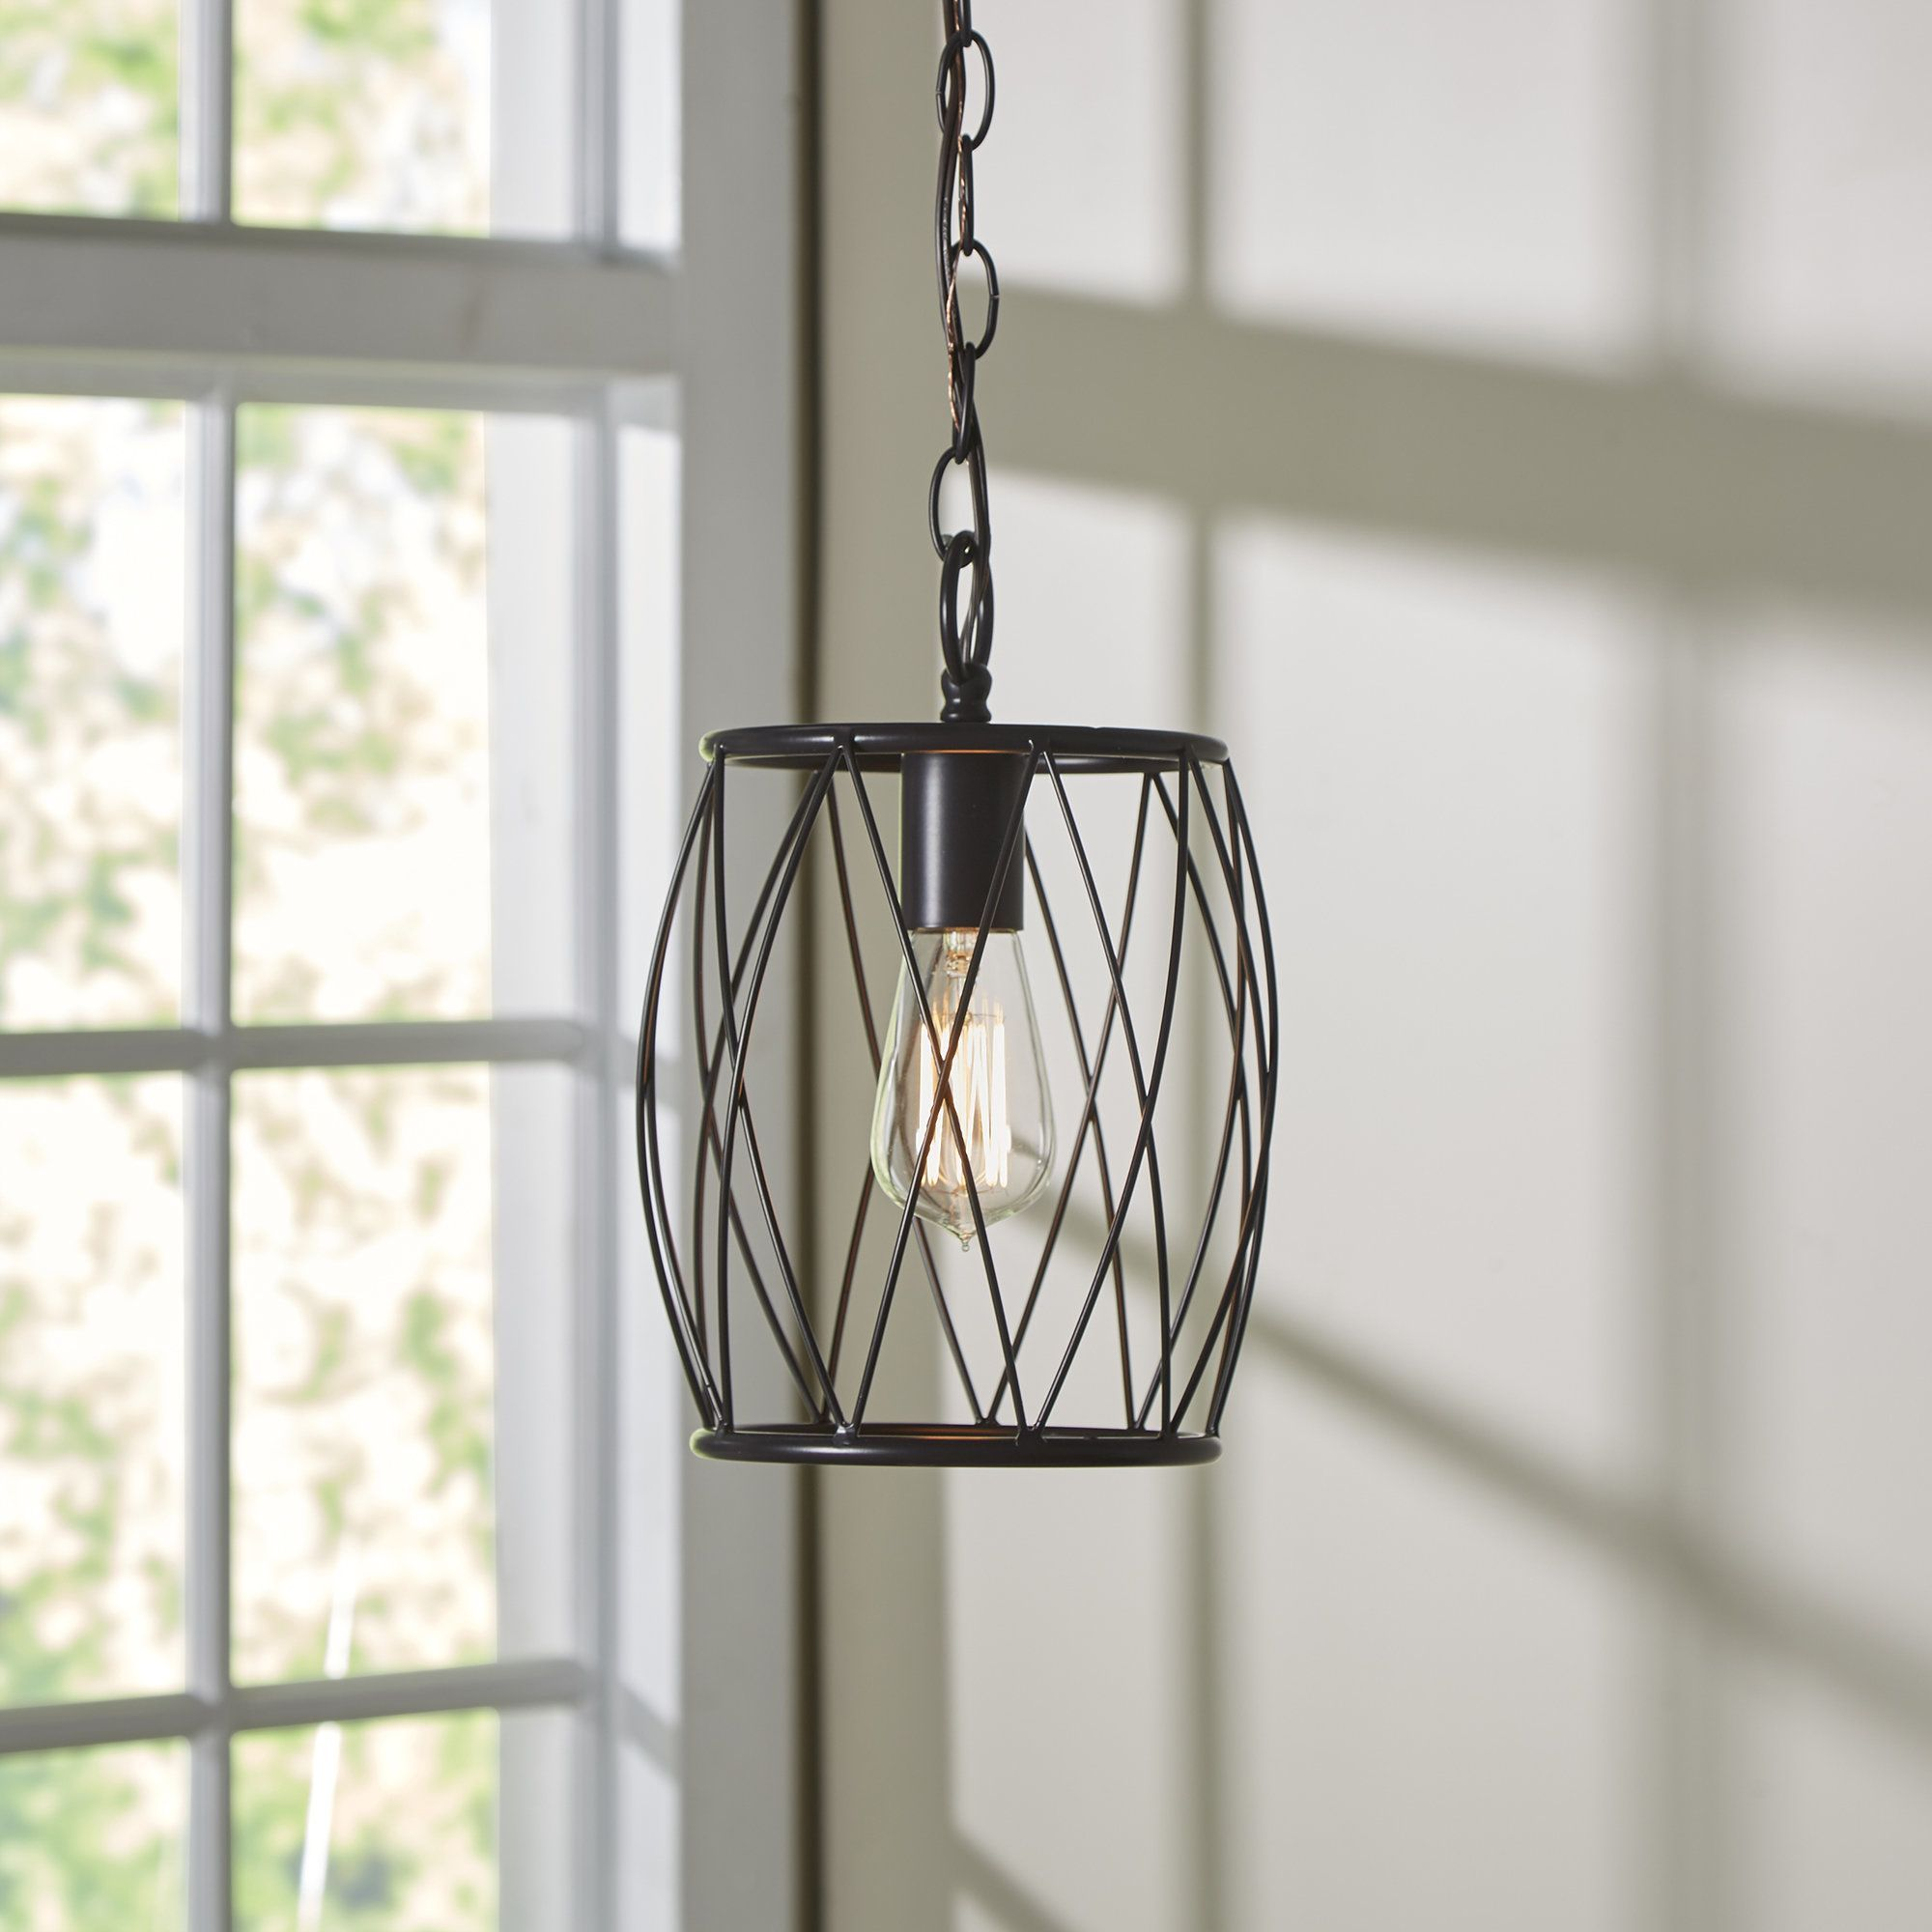 Poynter light mini pendant kitchen remodeling pinterest mini